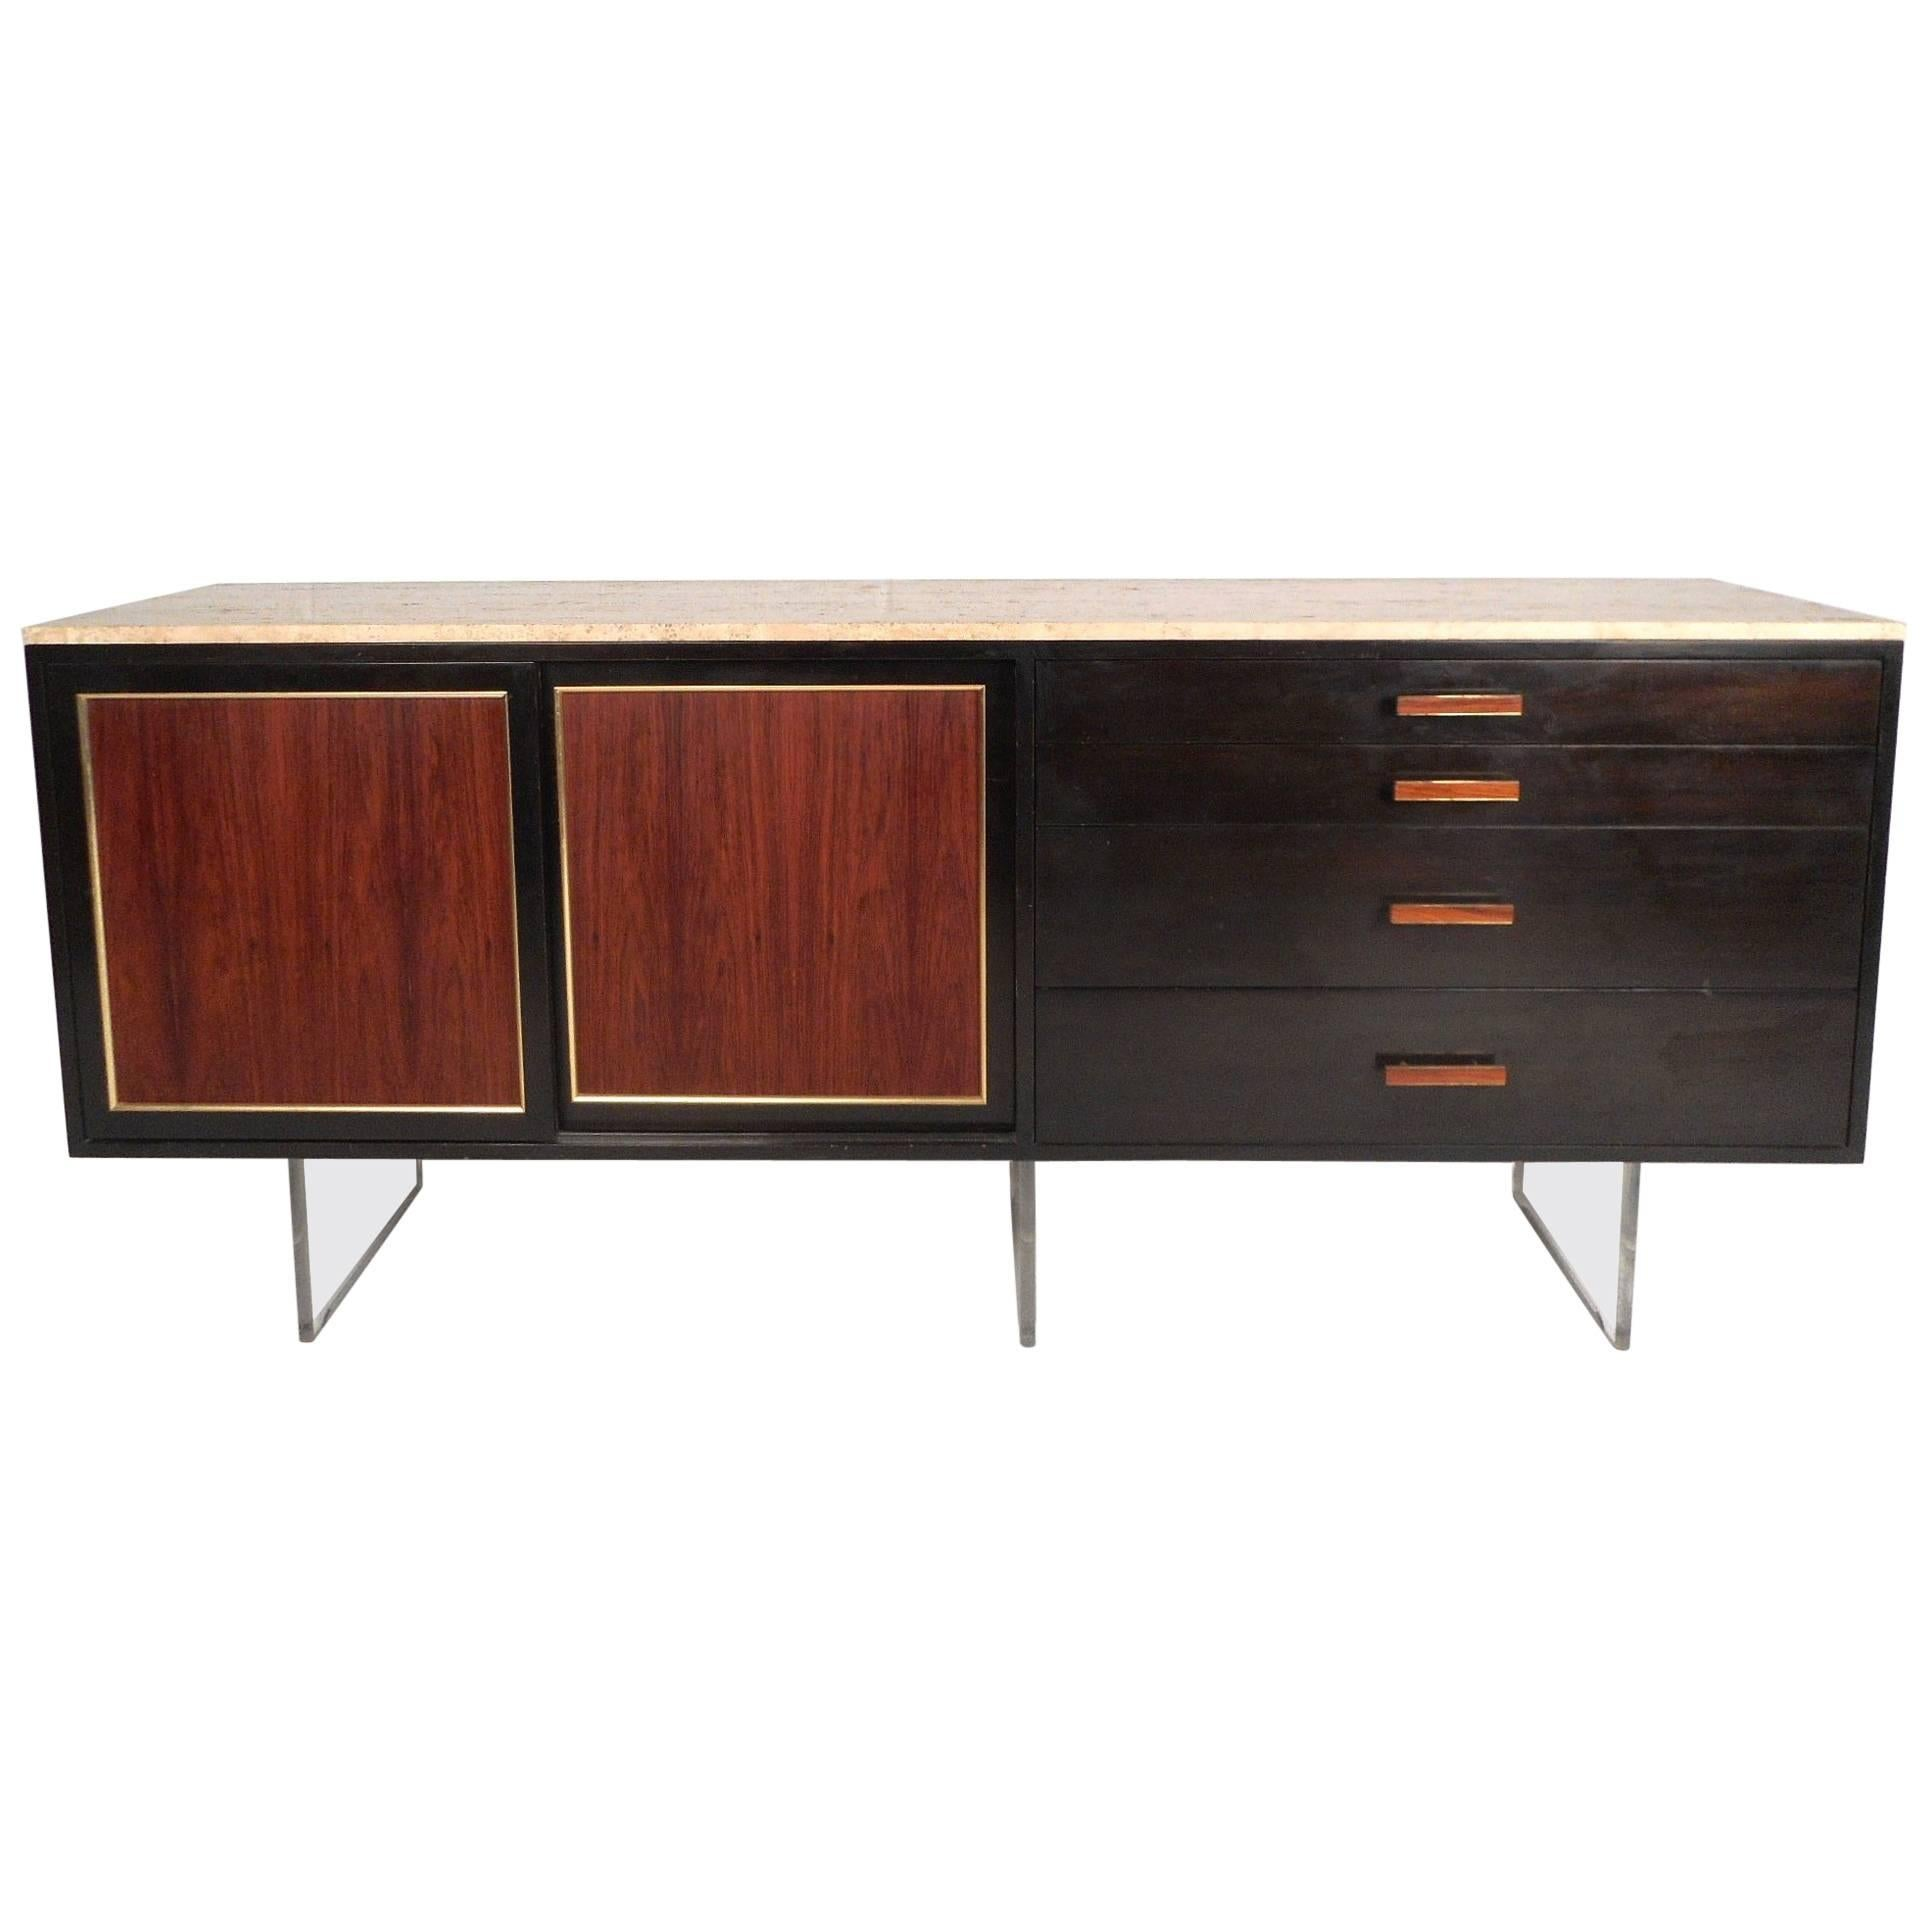 Exquisite Mid-Century Modern Marble-Top Sideboard by Harvey Probber